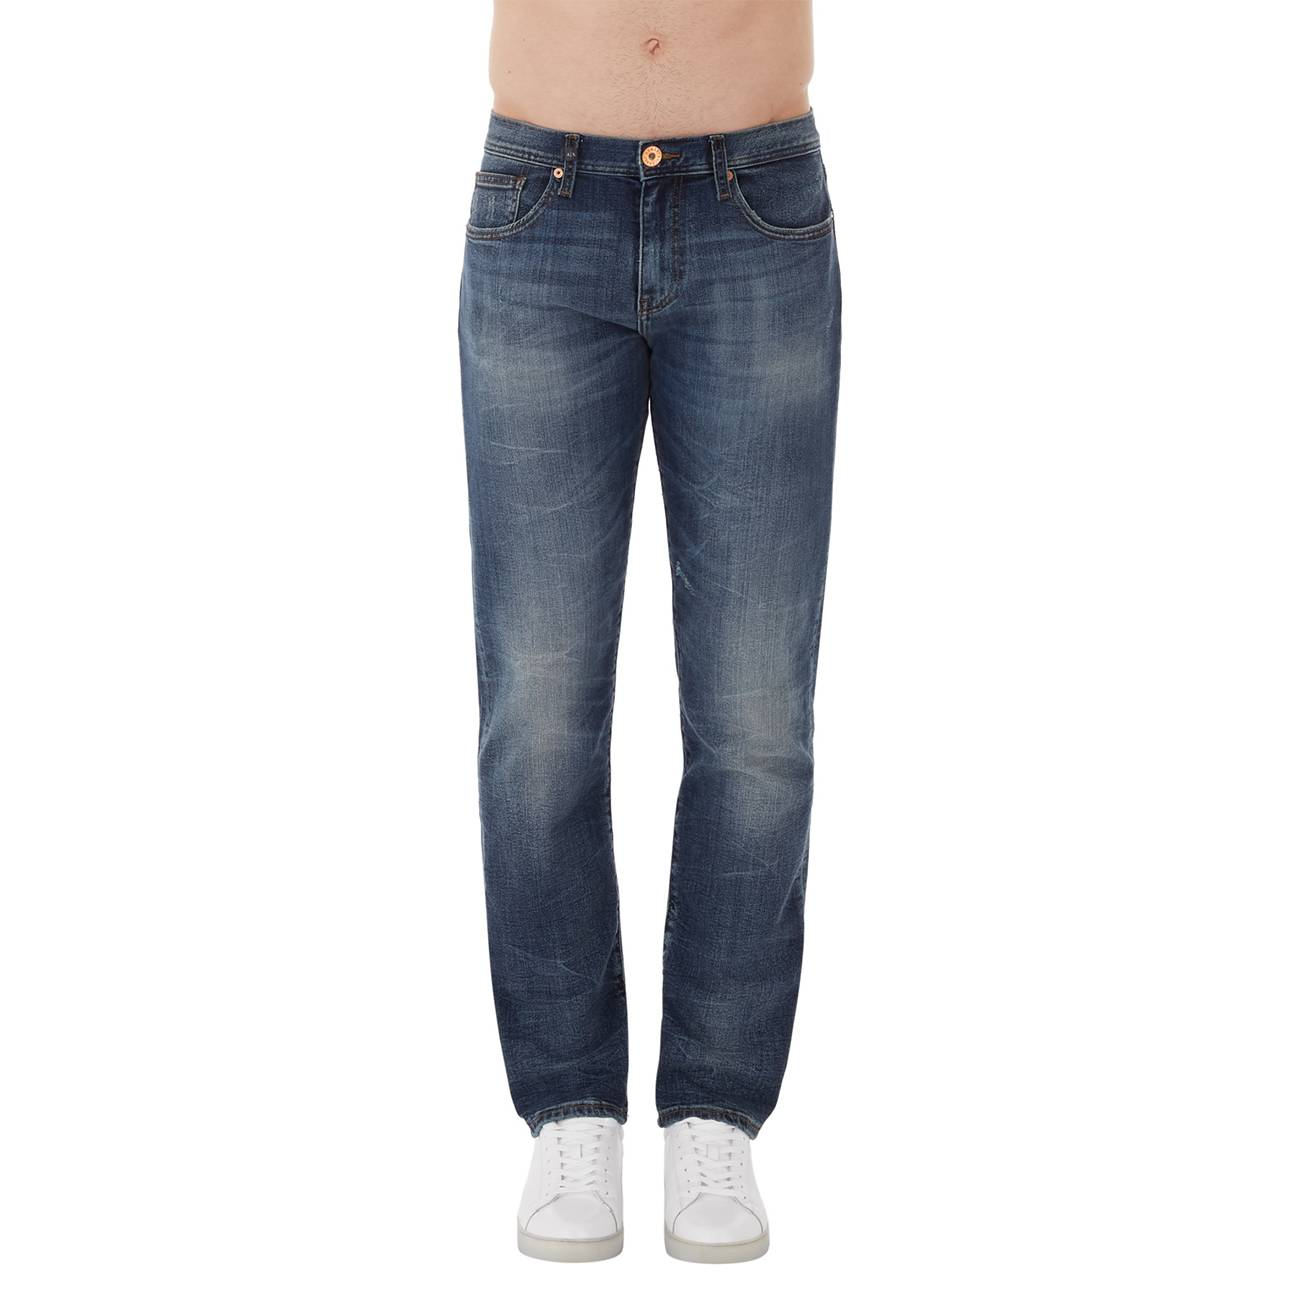 Jeans 33r